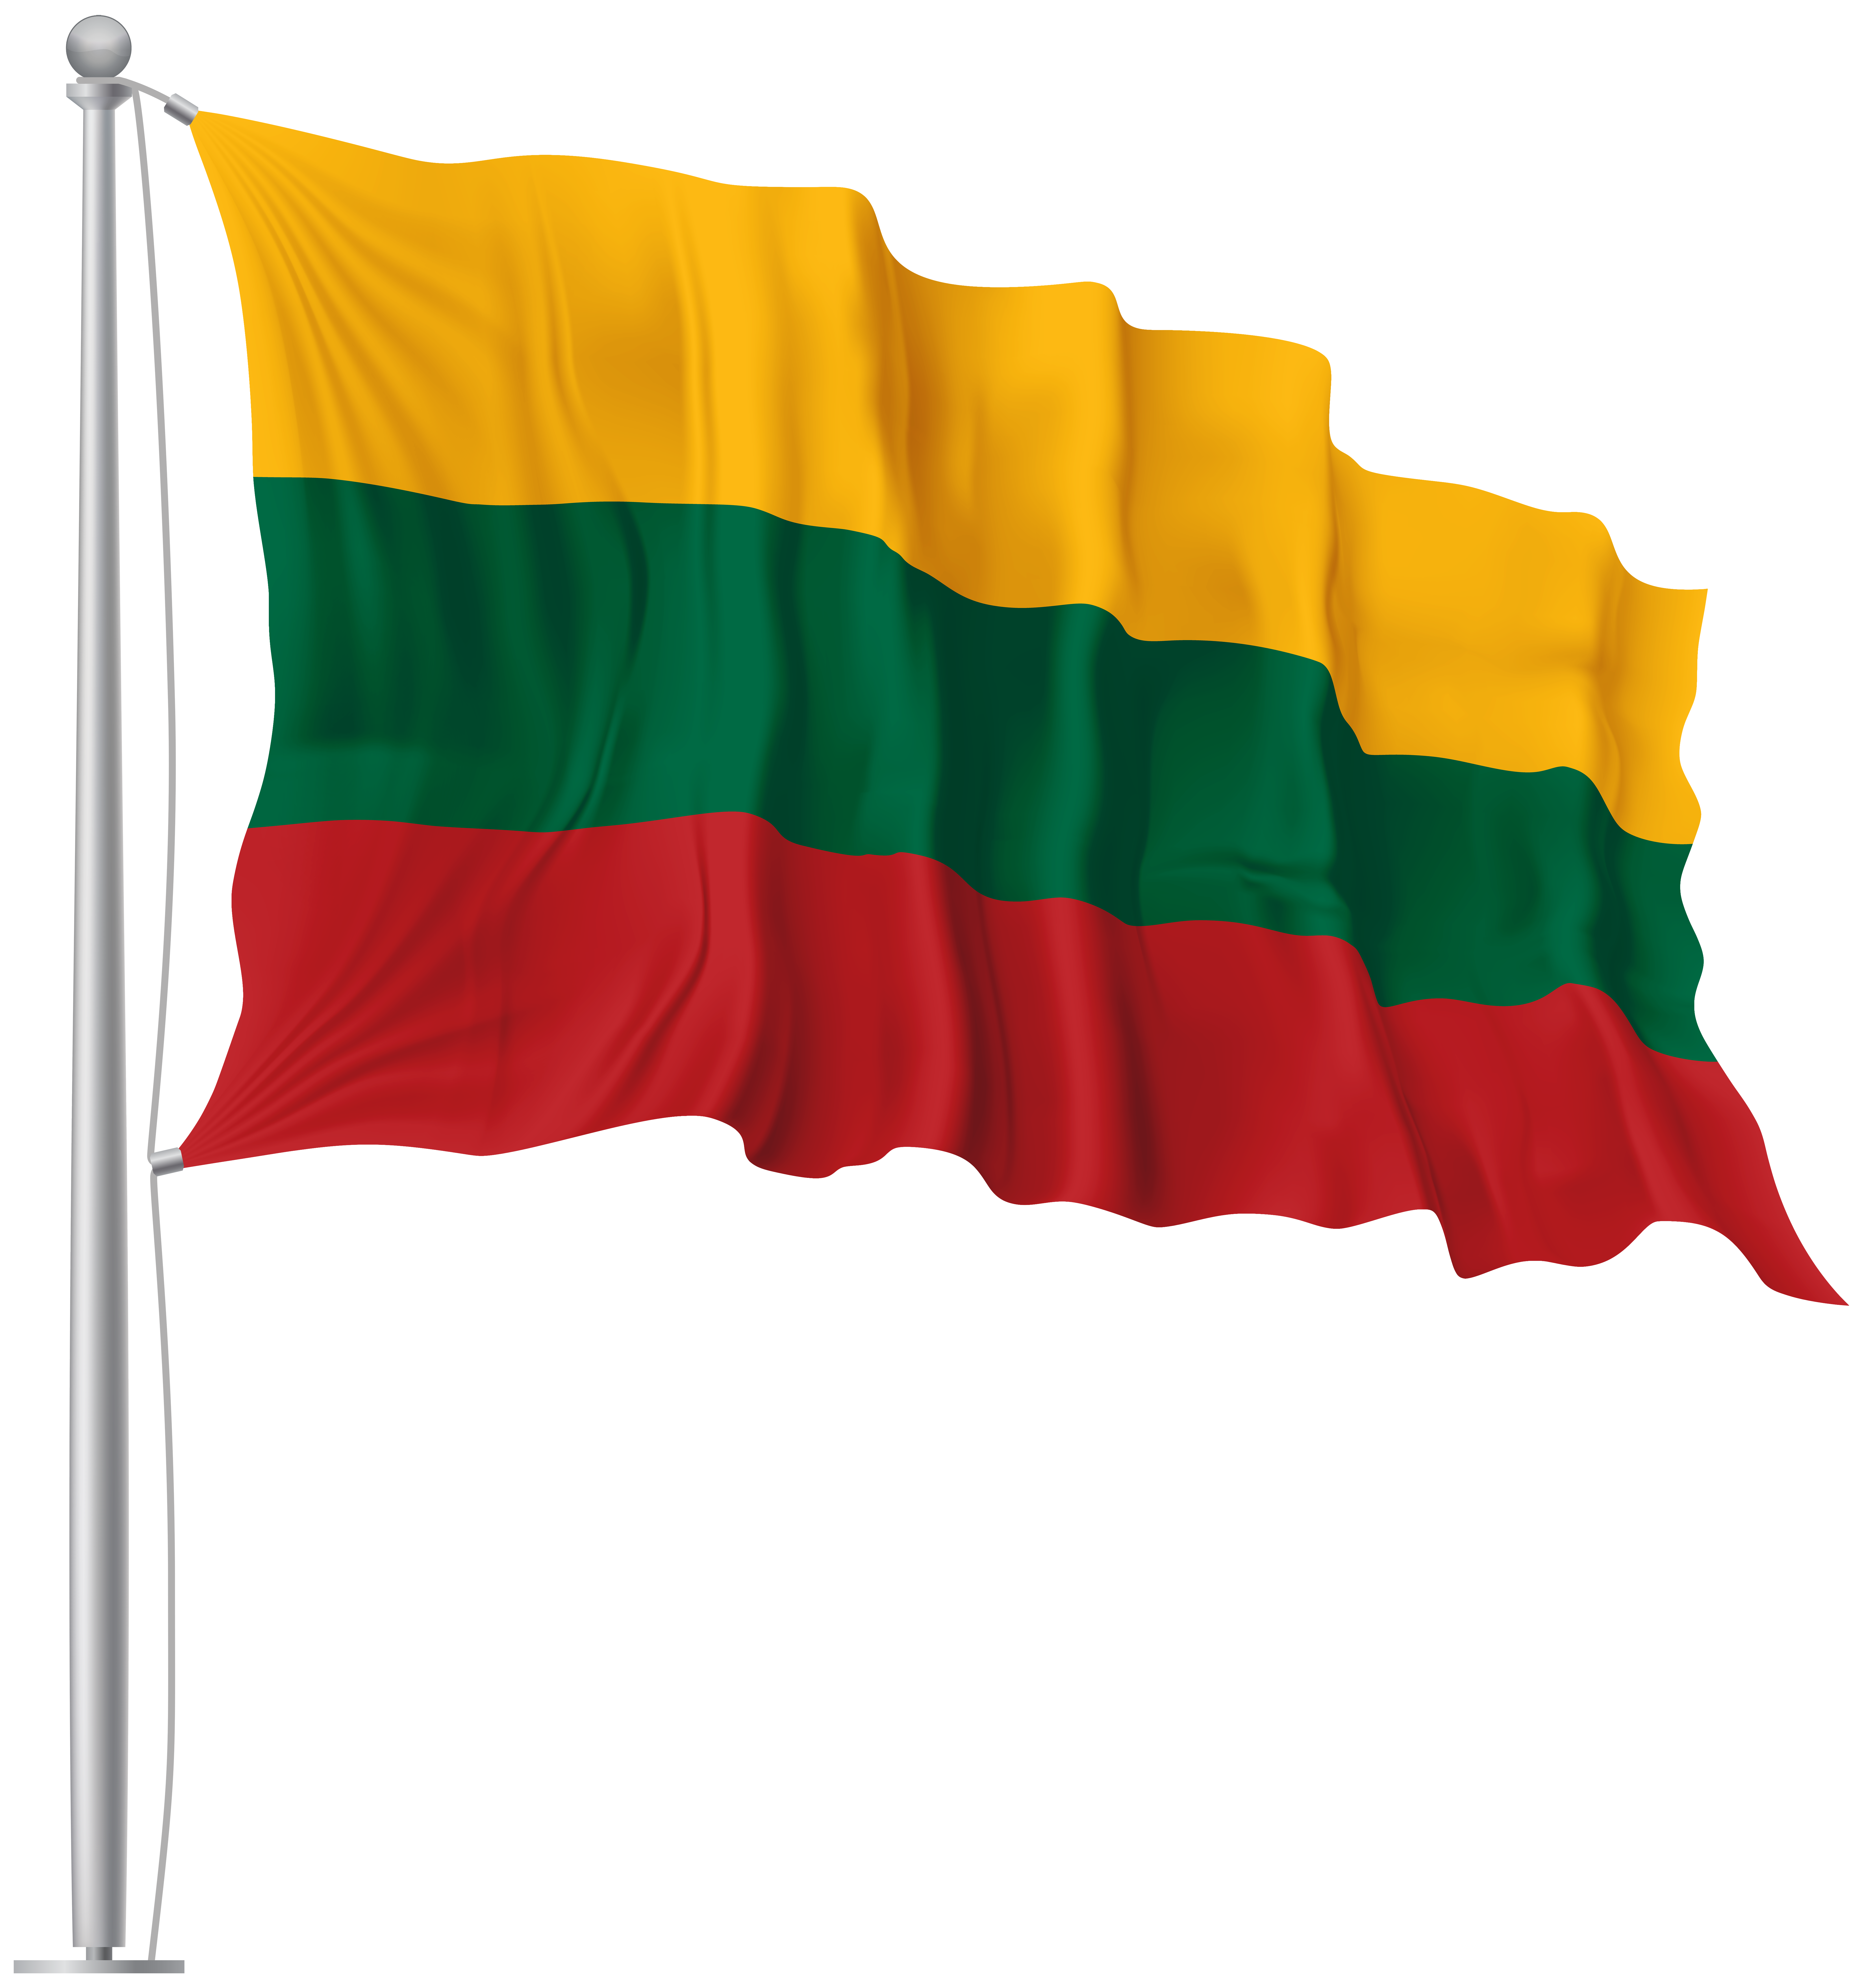 Banner flags png. Lithuania waving flag image